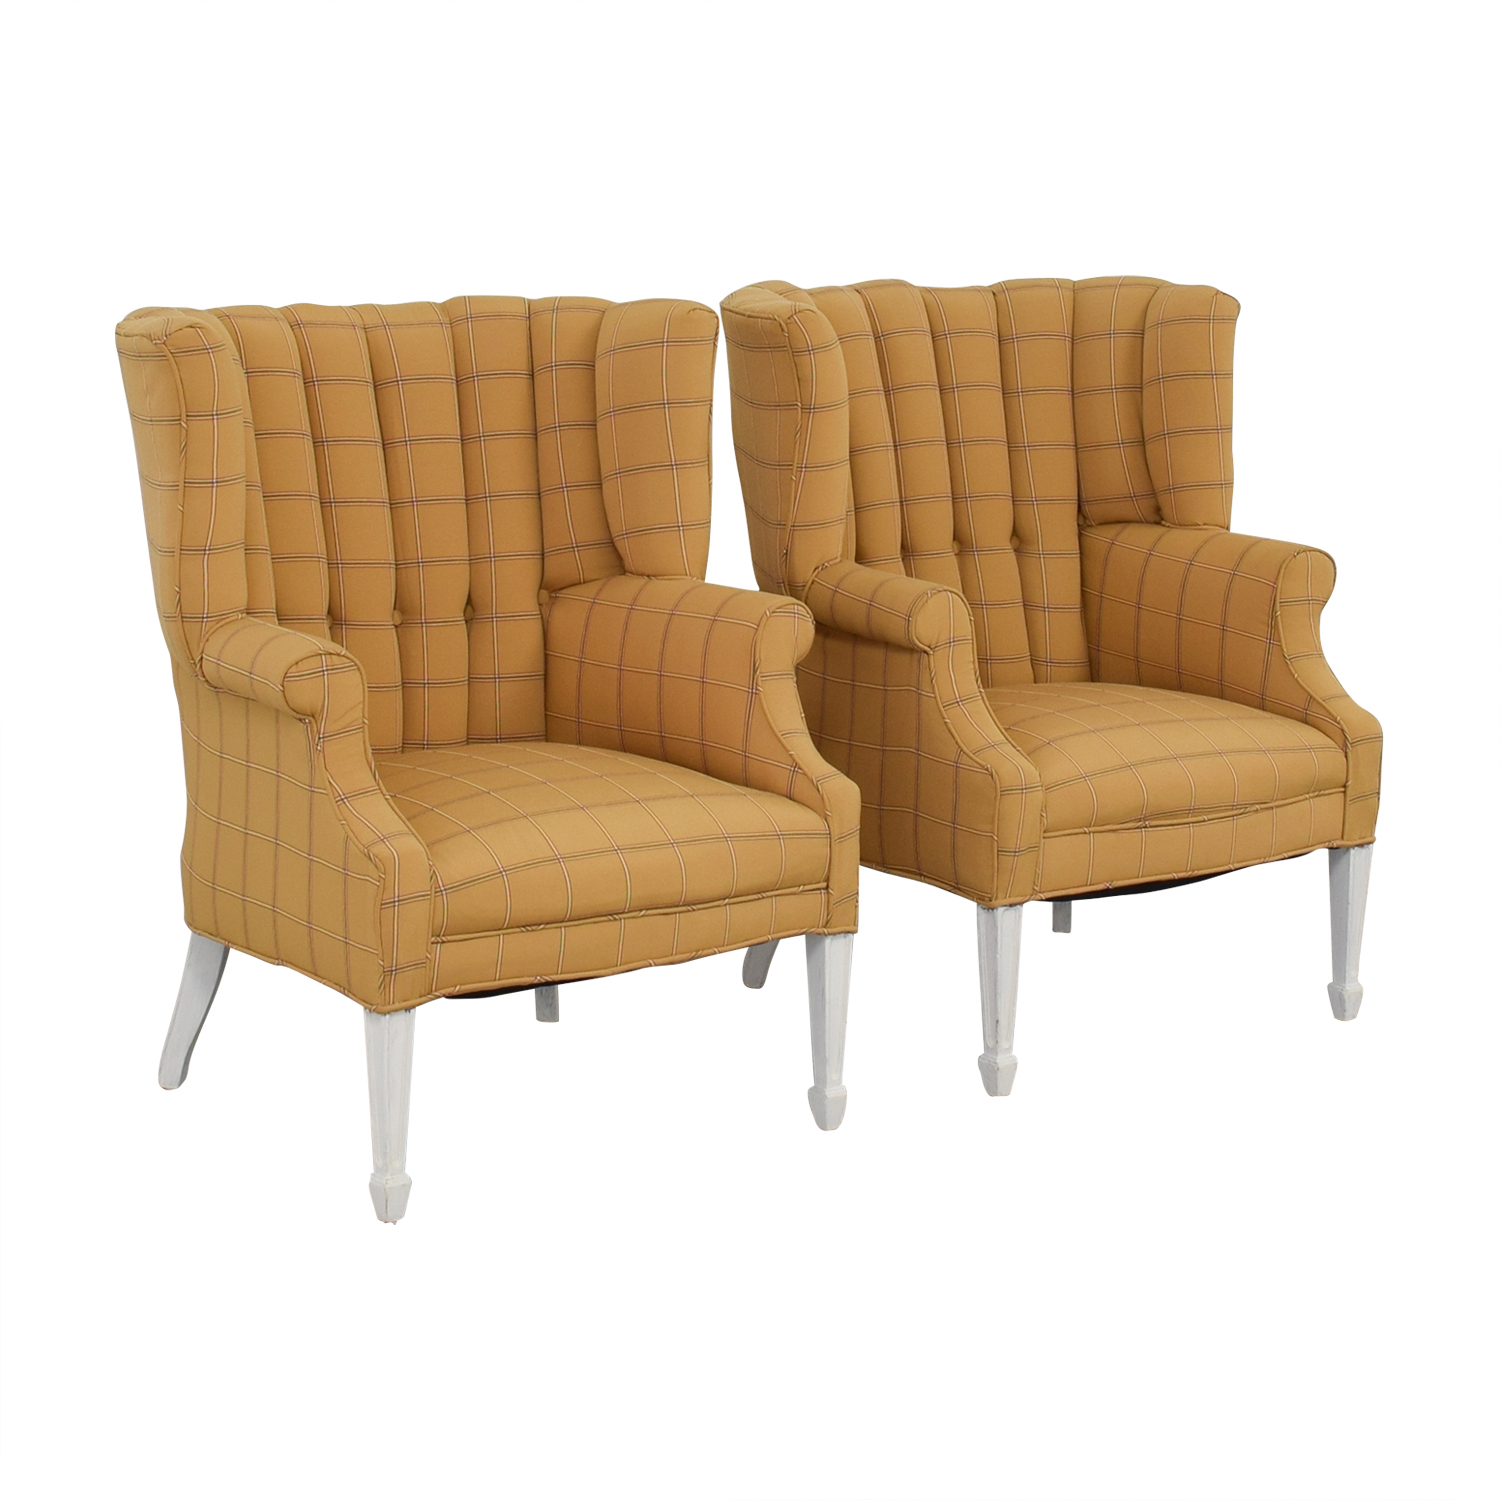 Vintage Yellow and Beige Plaid Wing Back Accent Chairs second hand